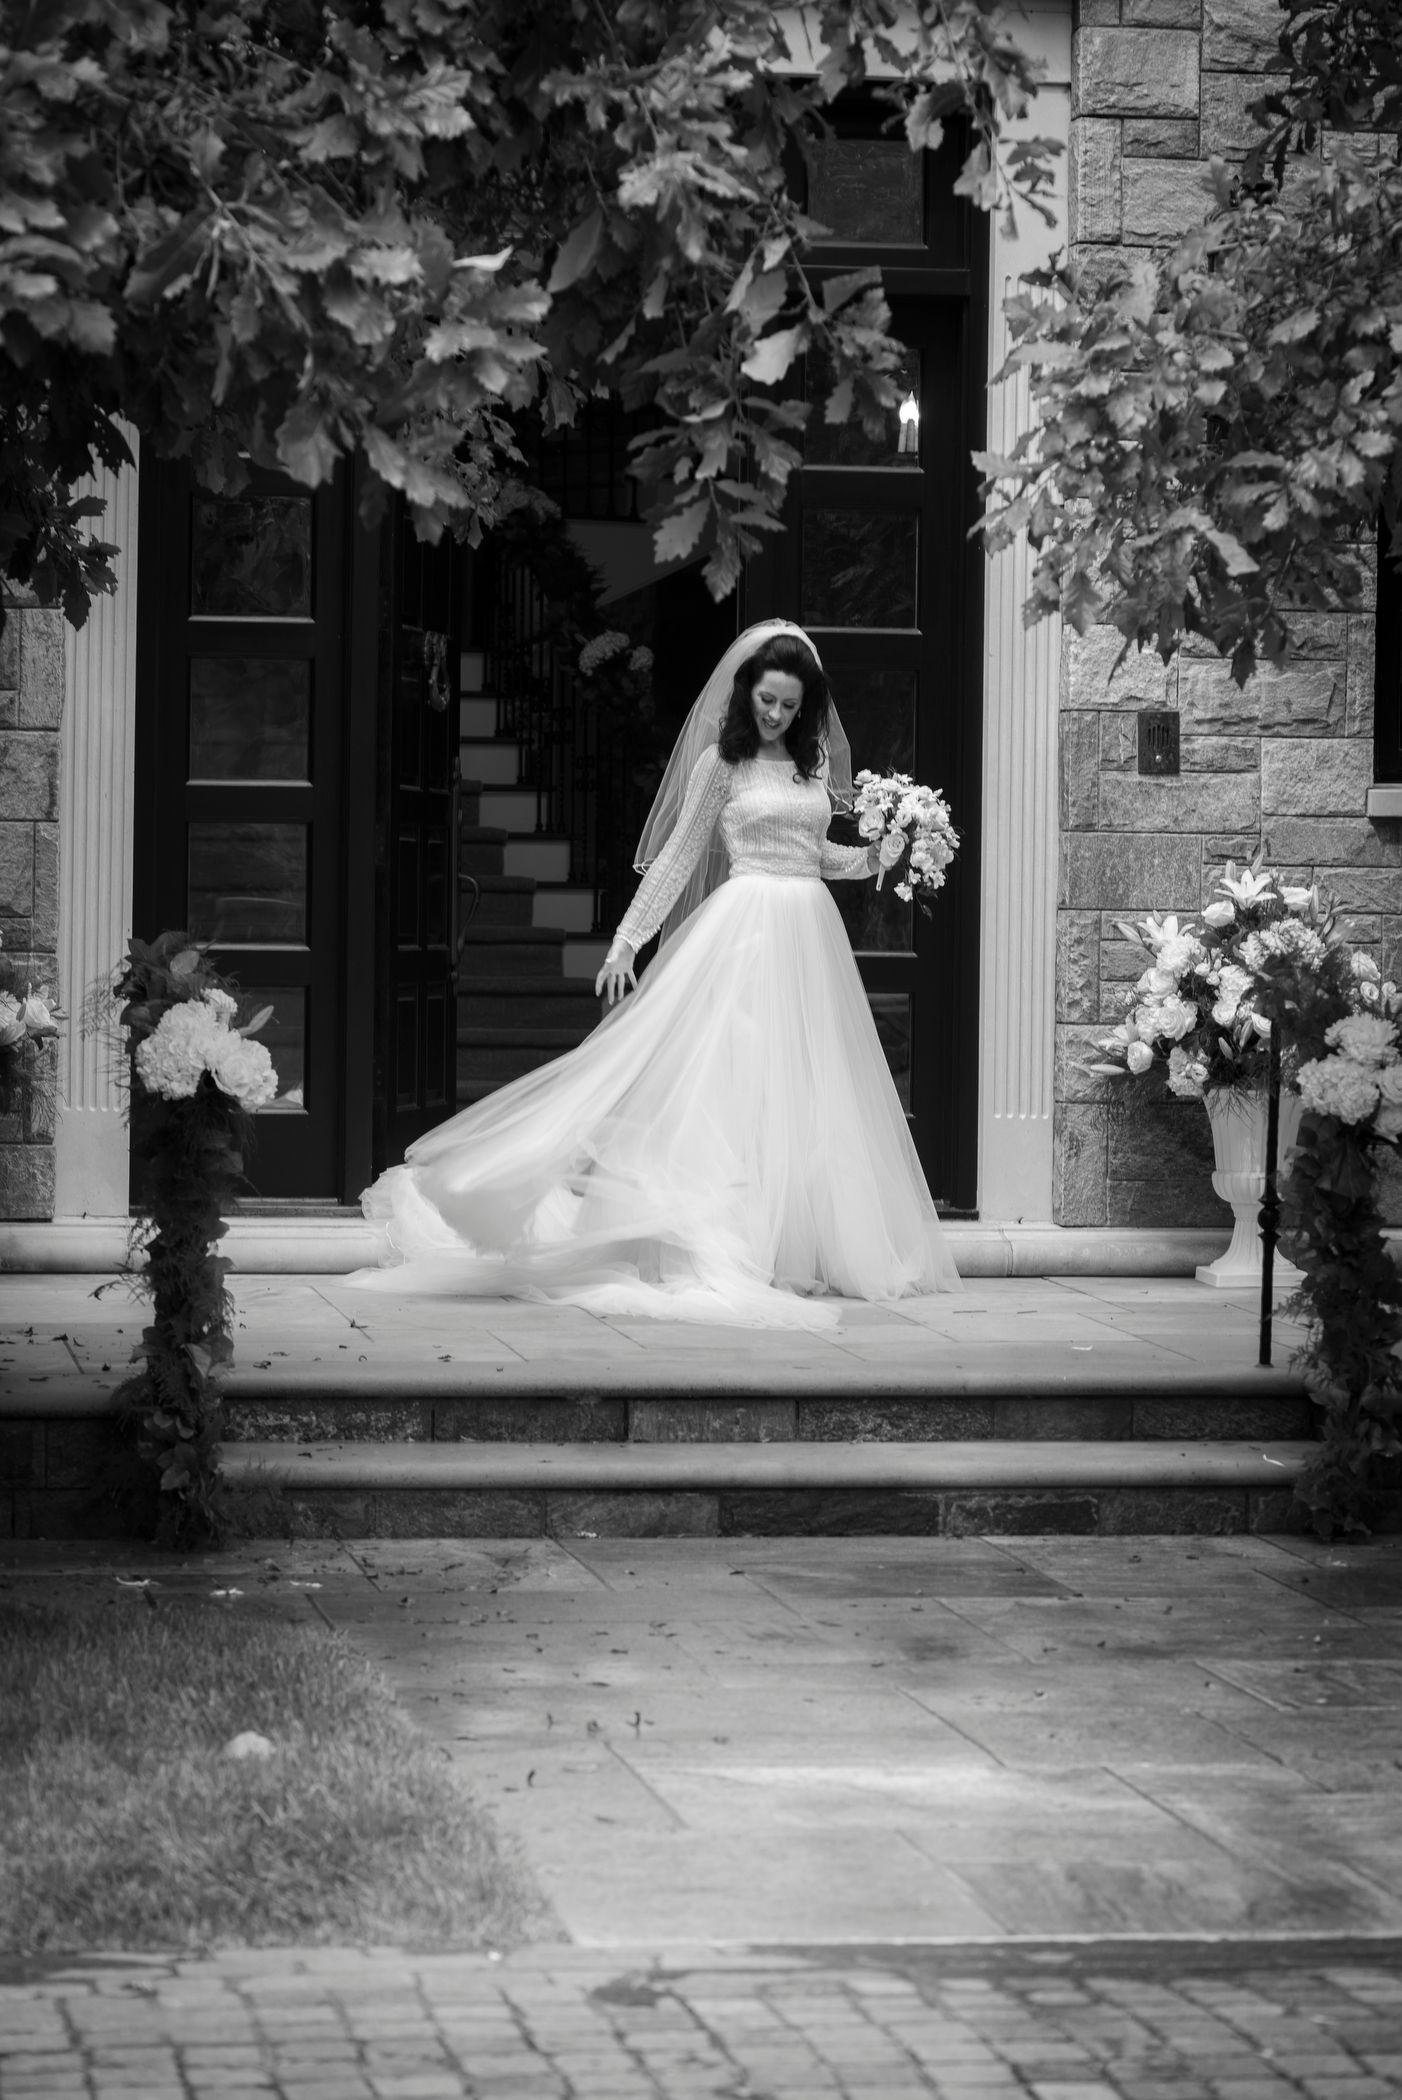 Elegant Bride In The Doorway